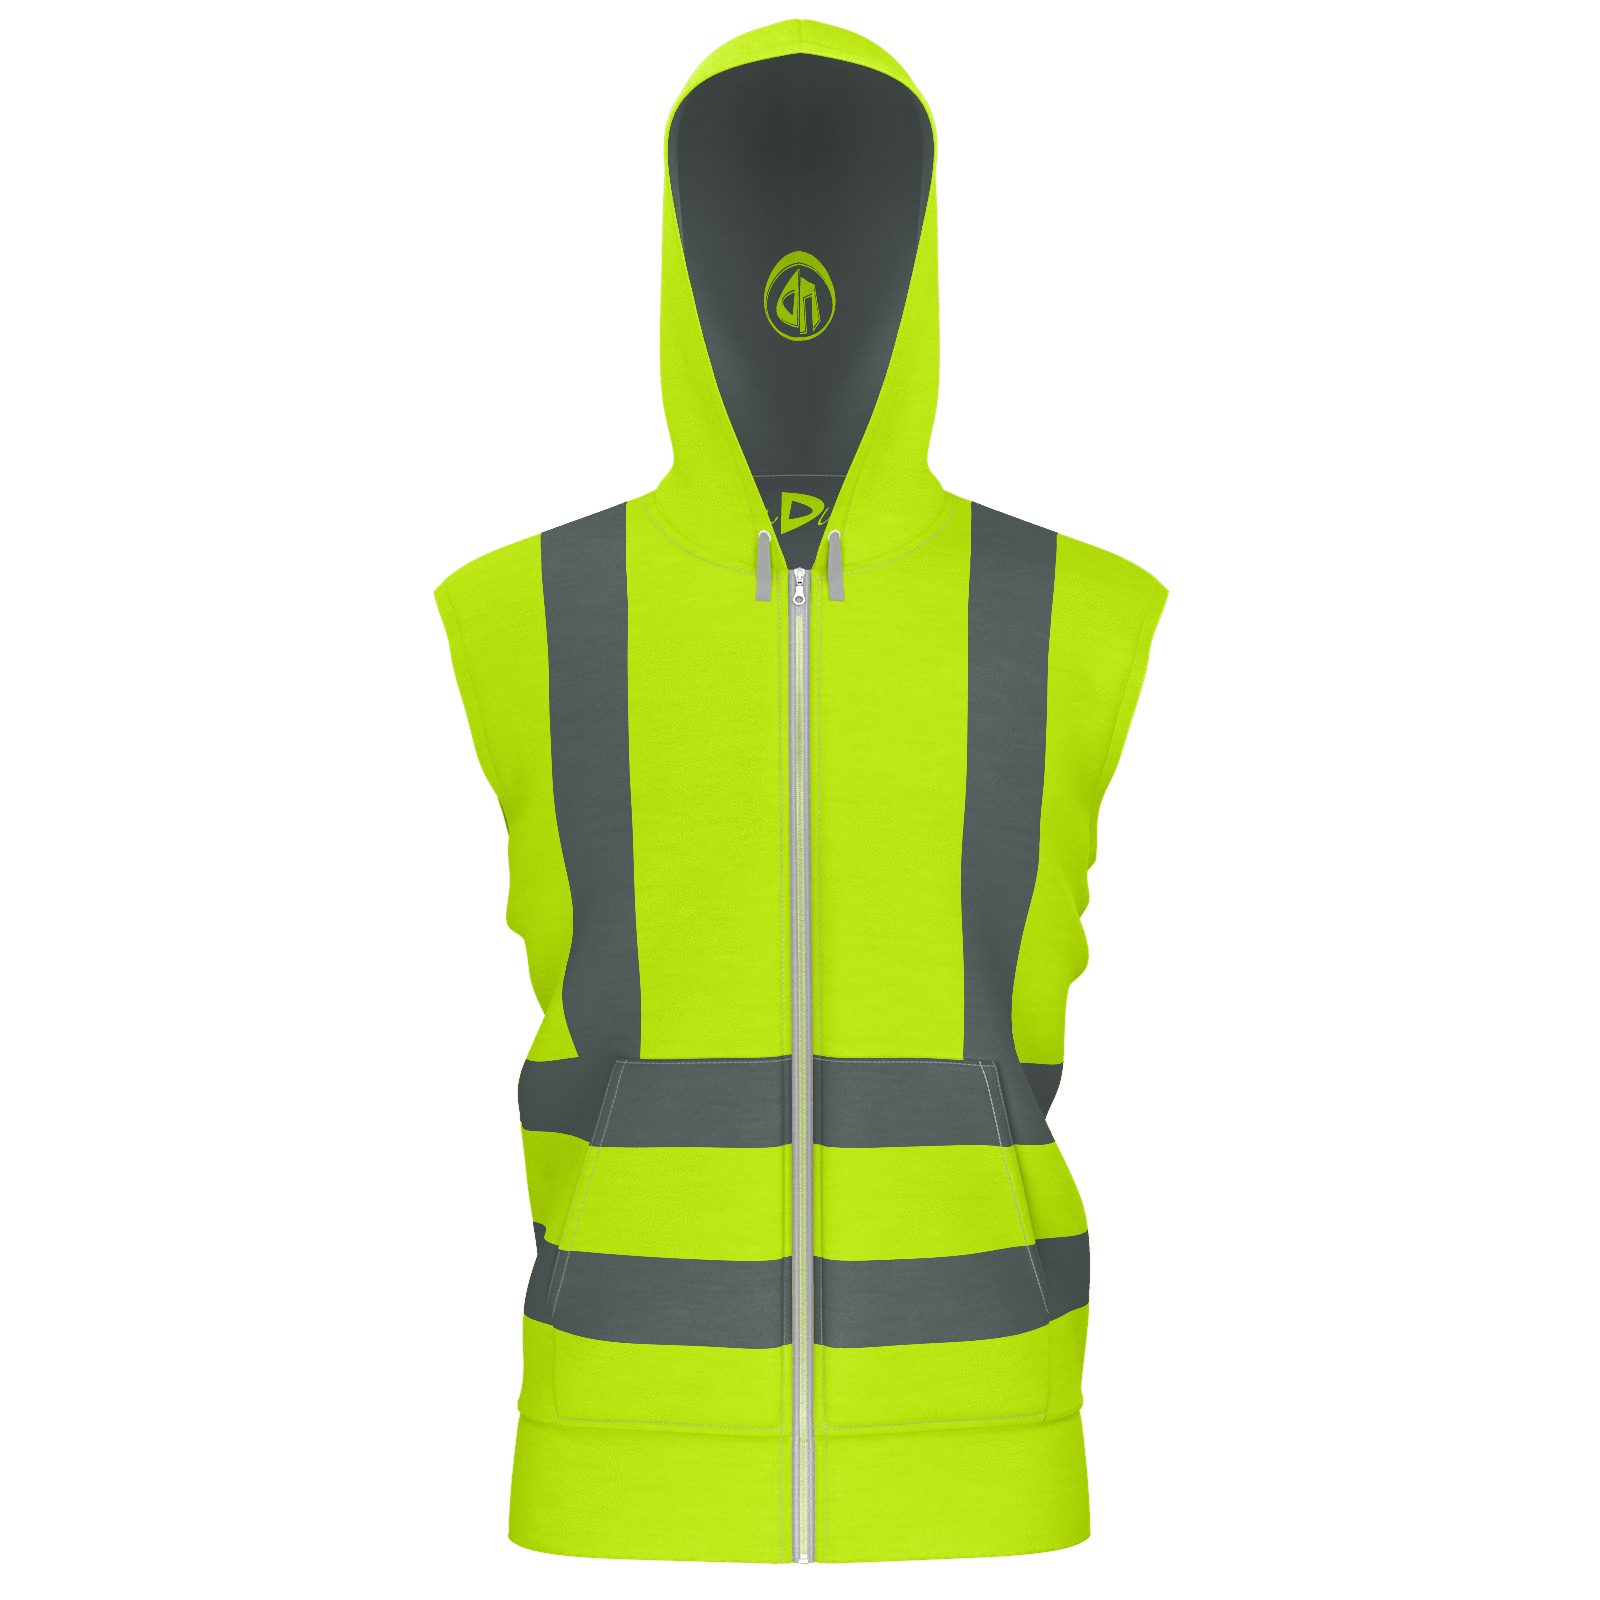 Yellow Vest Zip Hoodie With Dual Striped Suspenders Yellow Vest Sleeveless Hoodie Hoodies